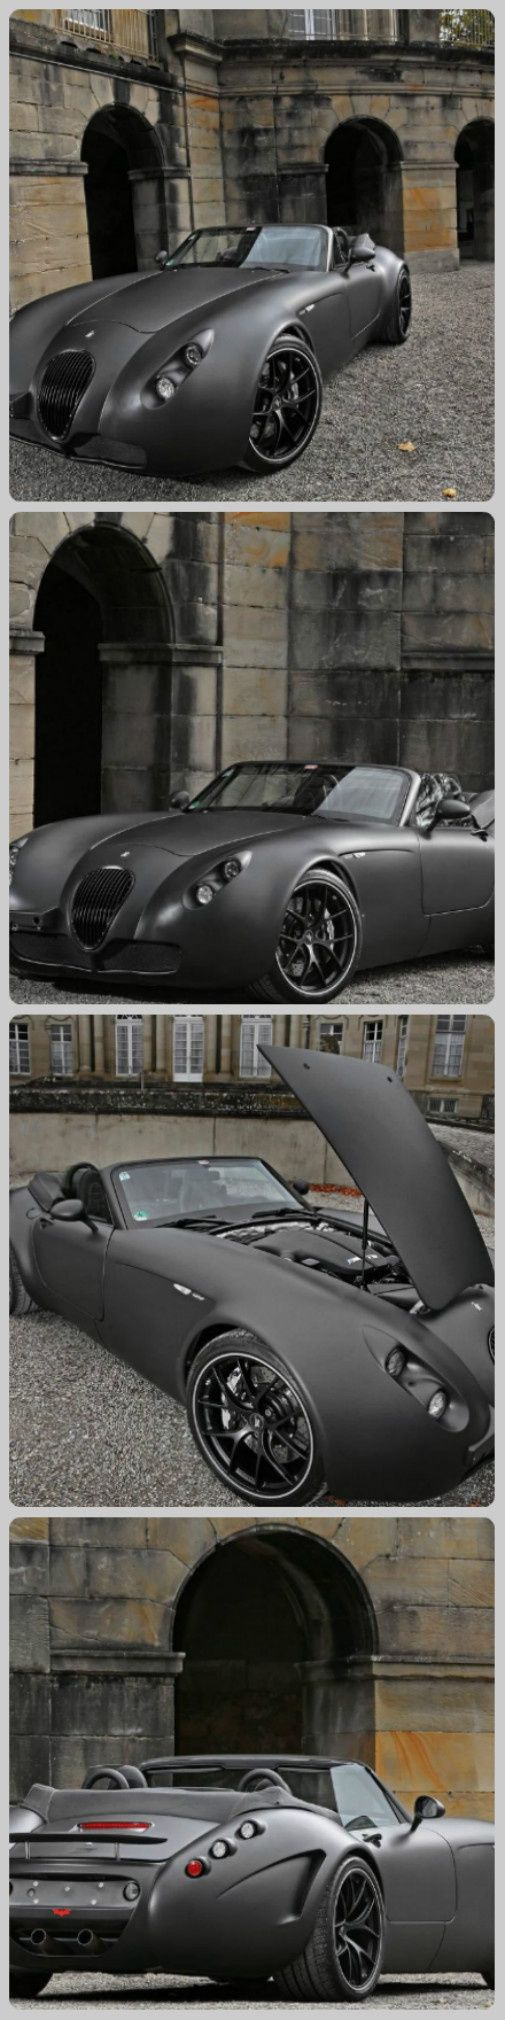 bucket list: #14 - be picked up by Alfred in this car... dressed as batman.